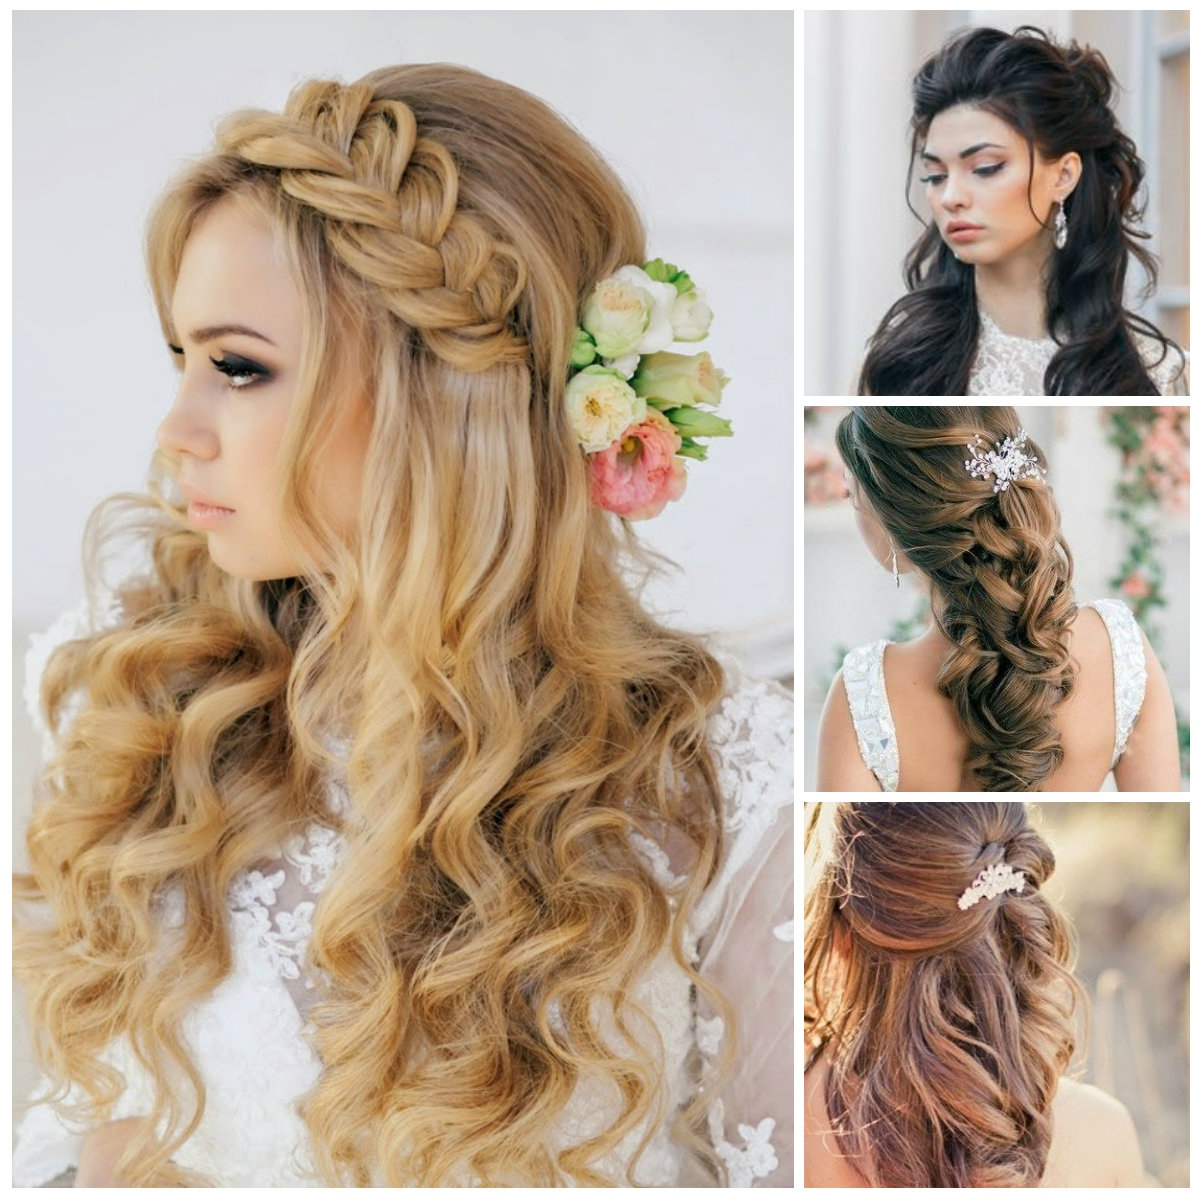 Women Hairstyle : Wedding Hairstyles For Long Hair With Flowers Throughout Well Known Half Short Half Medium Haircuts (View 6 of 20)